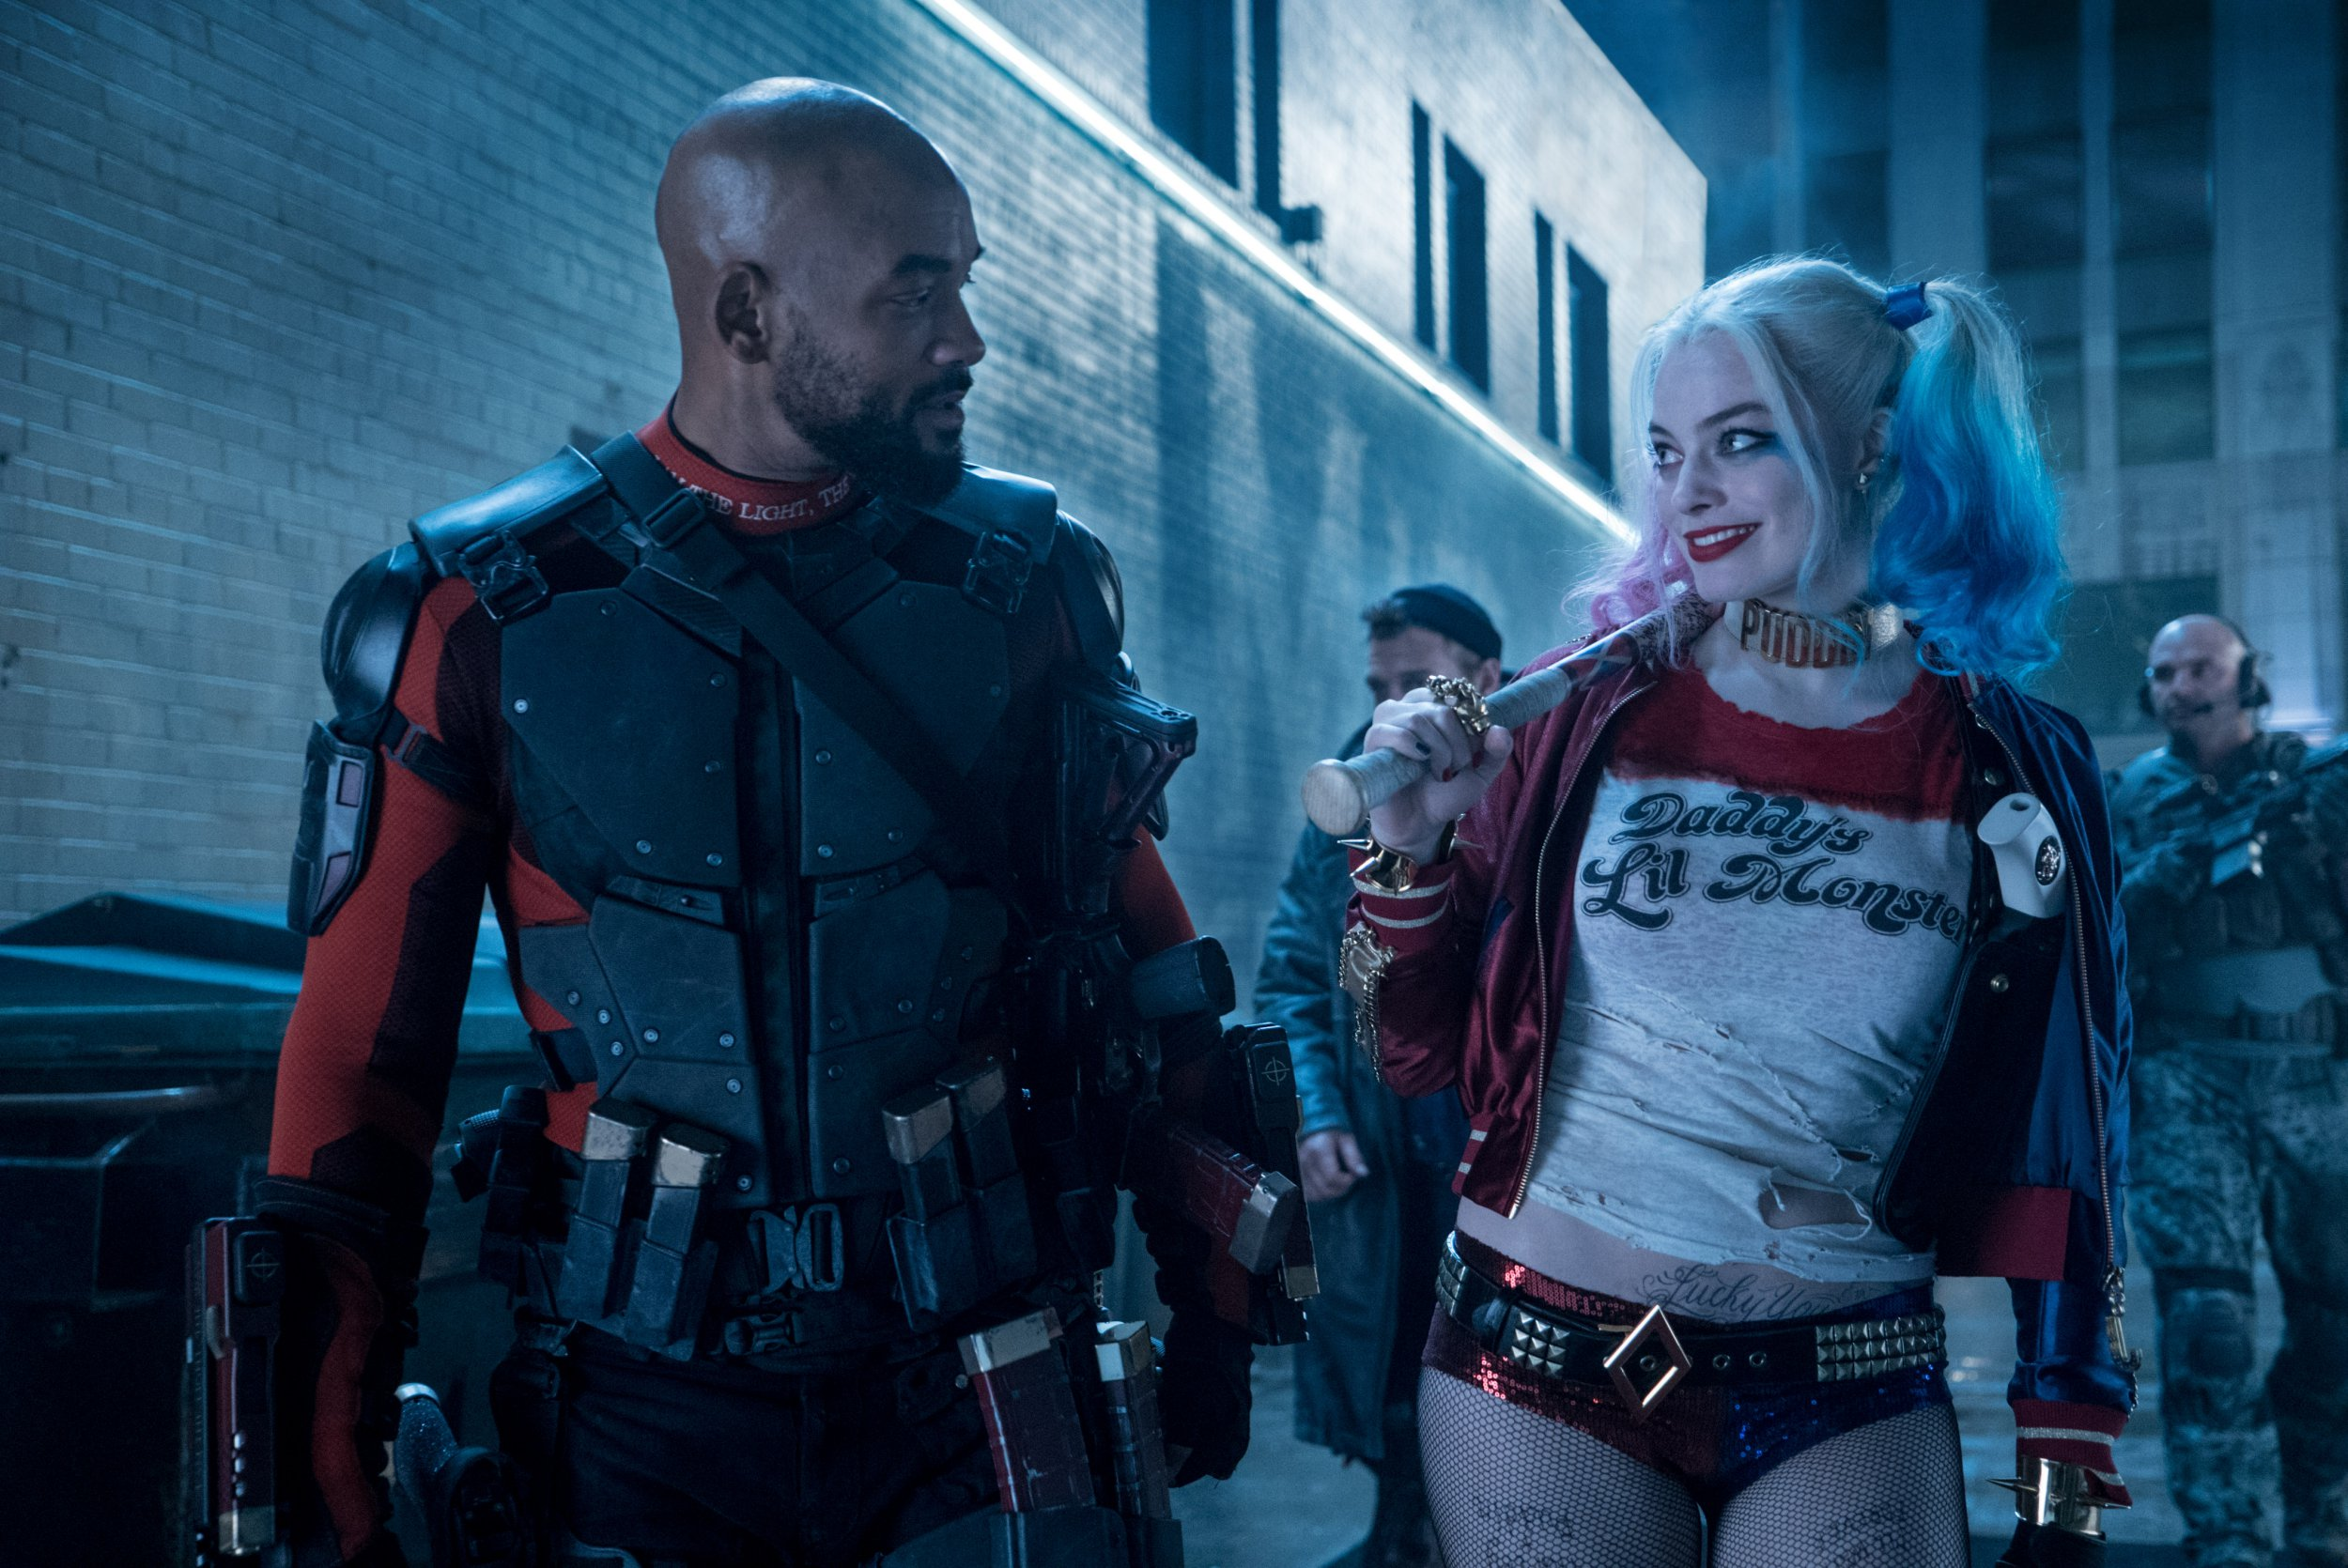 Will Smith won't be returning for the Suicide Squad sequel